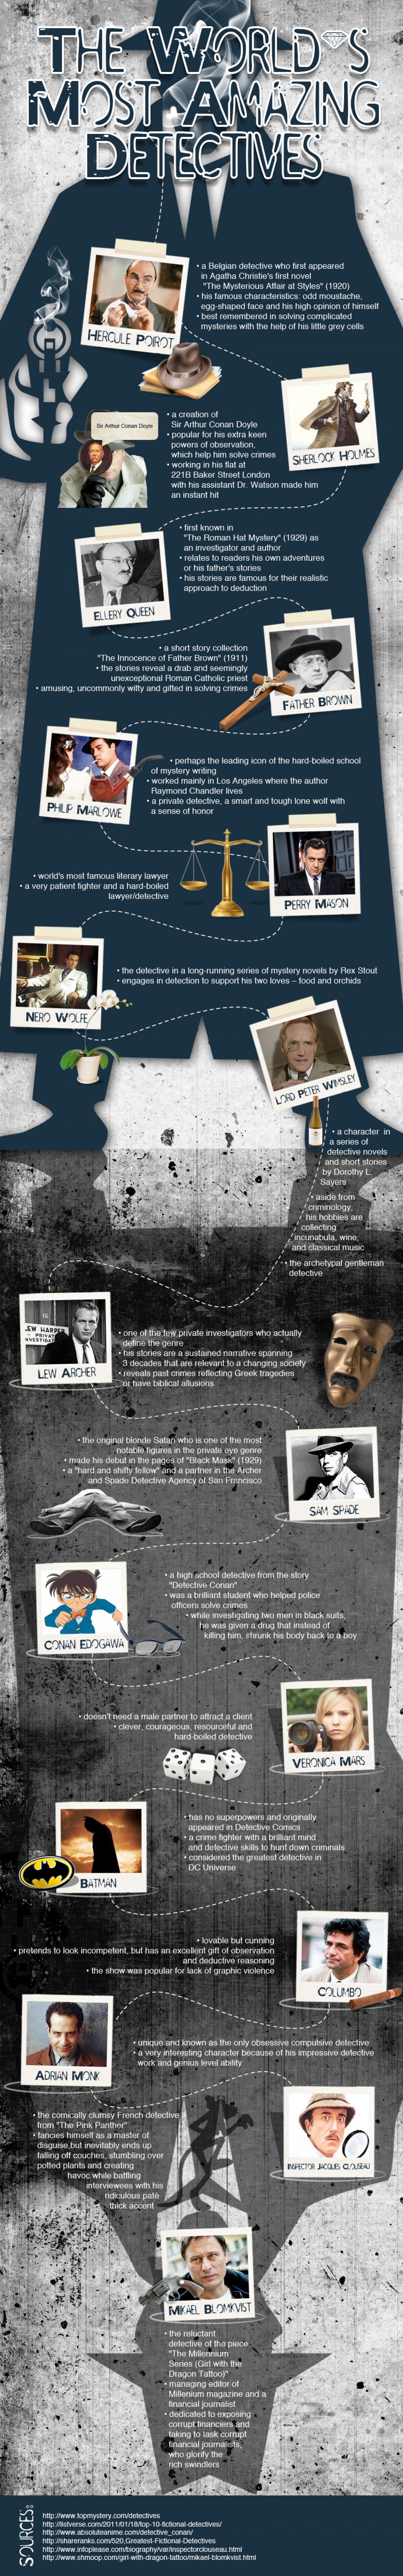 The World's Most Amazing Detectives Infographic